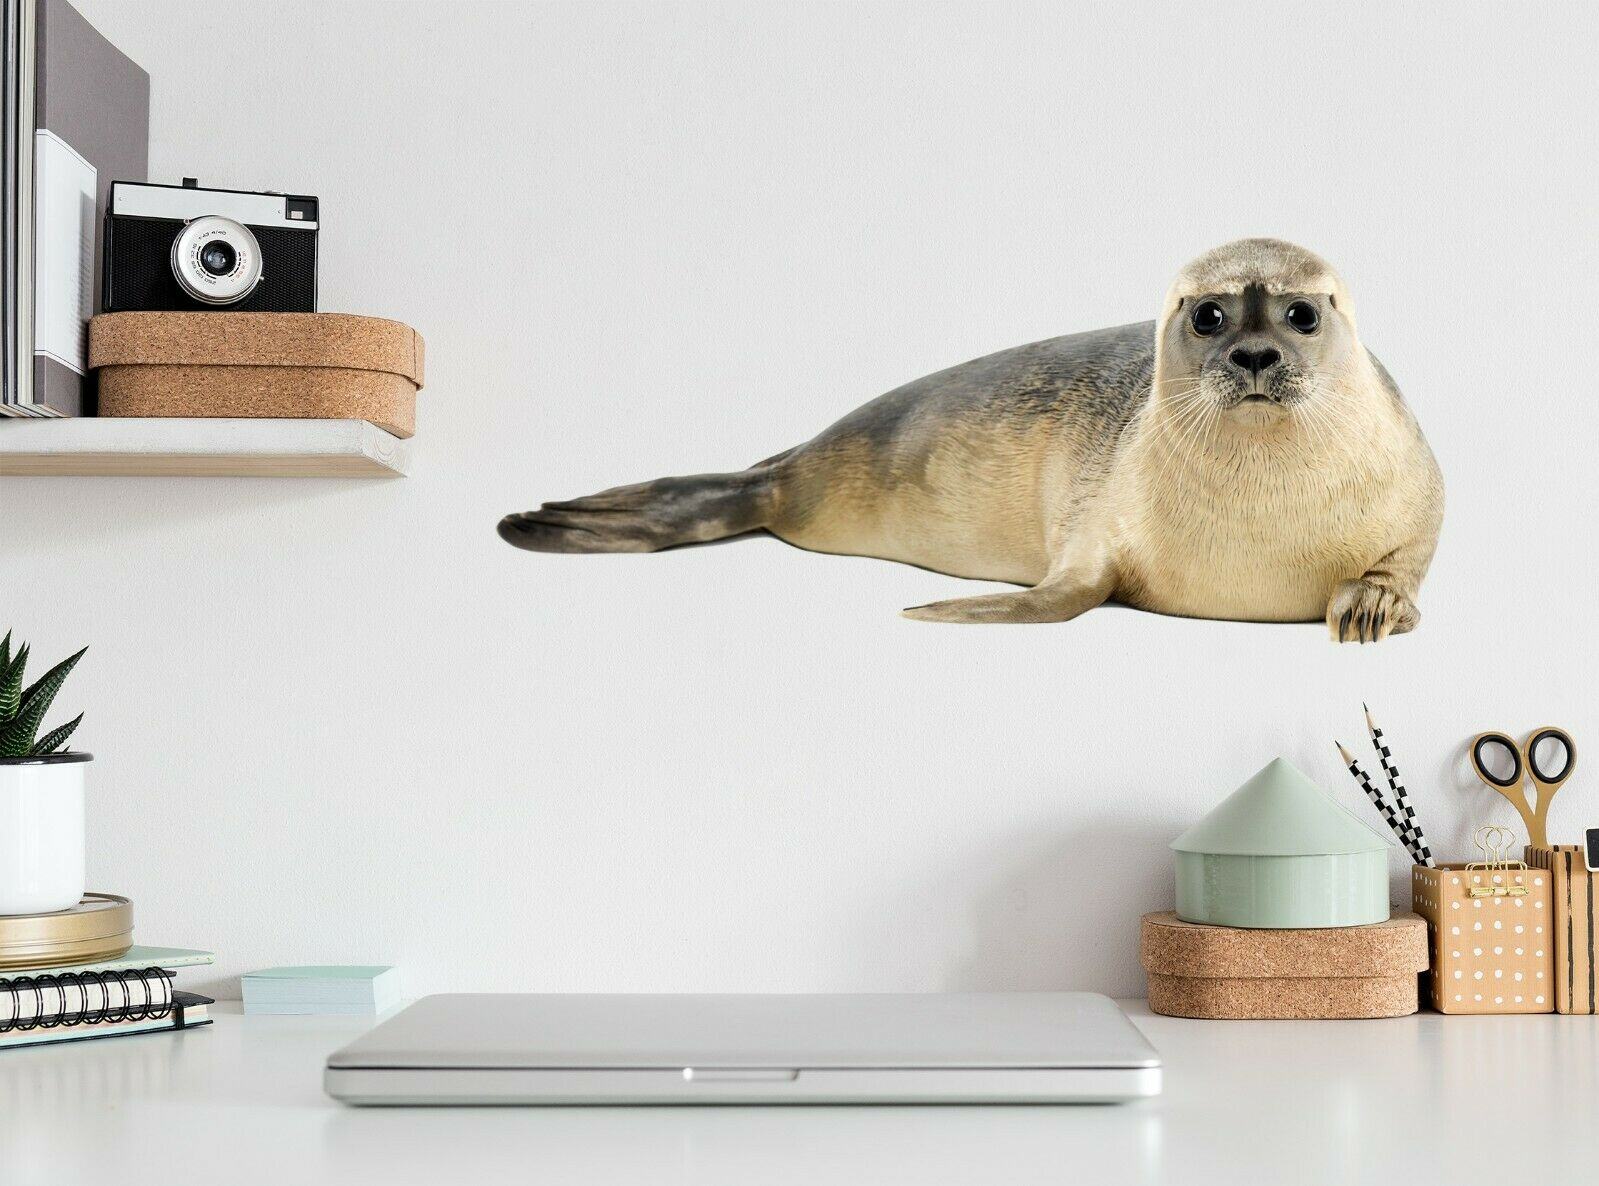 3D Big Eyes Sea Lion A64 Animal Wallpaper Mural Poster Wall Stickers Decal Zoe